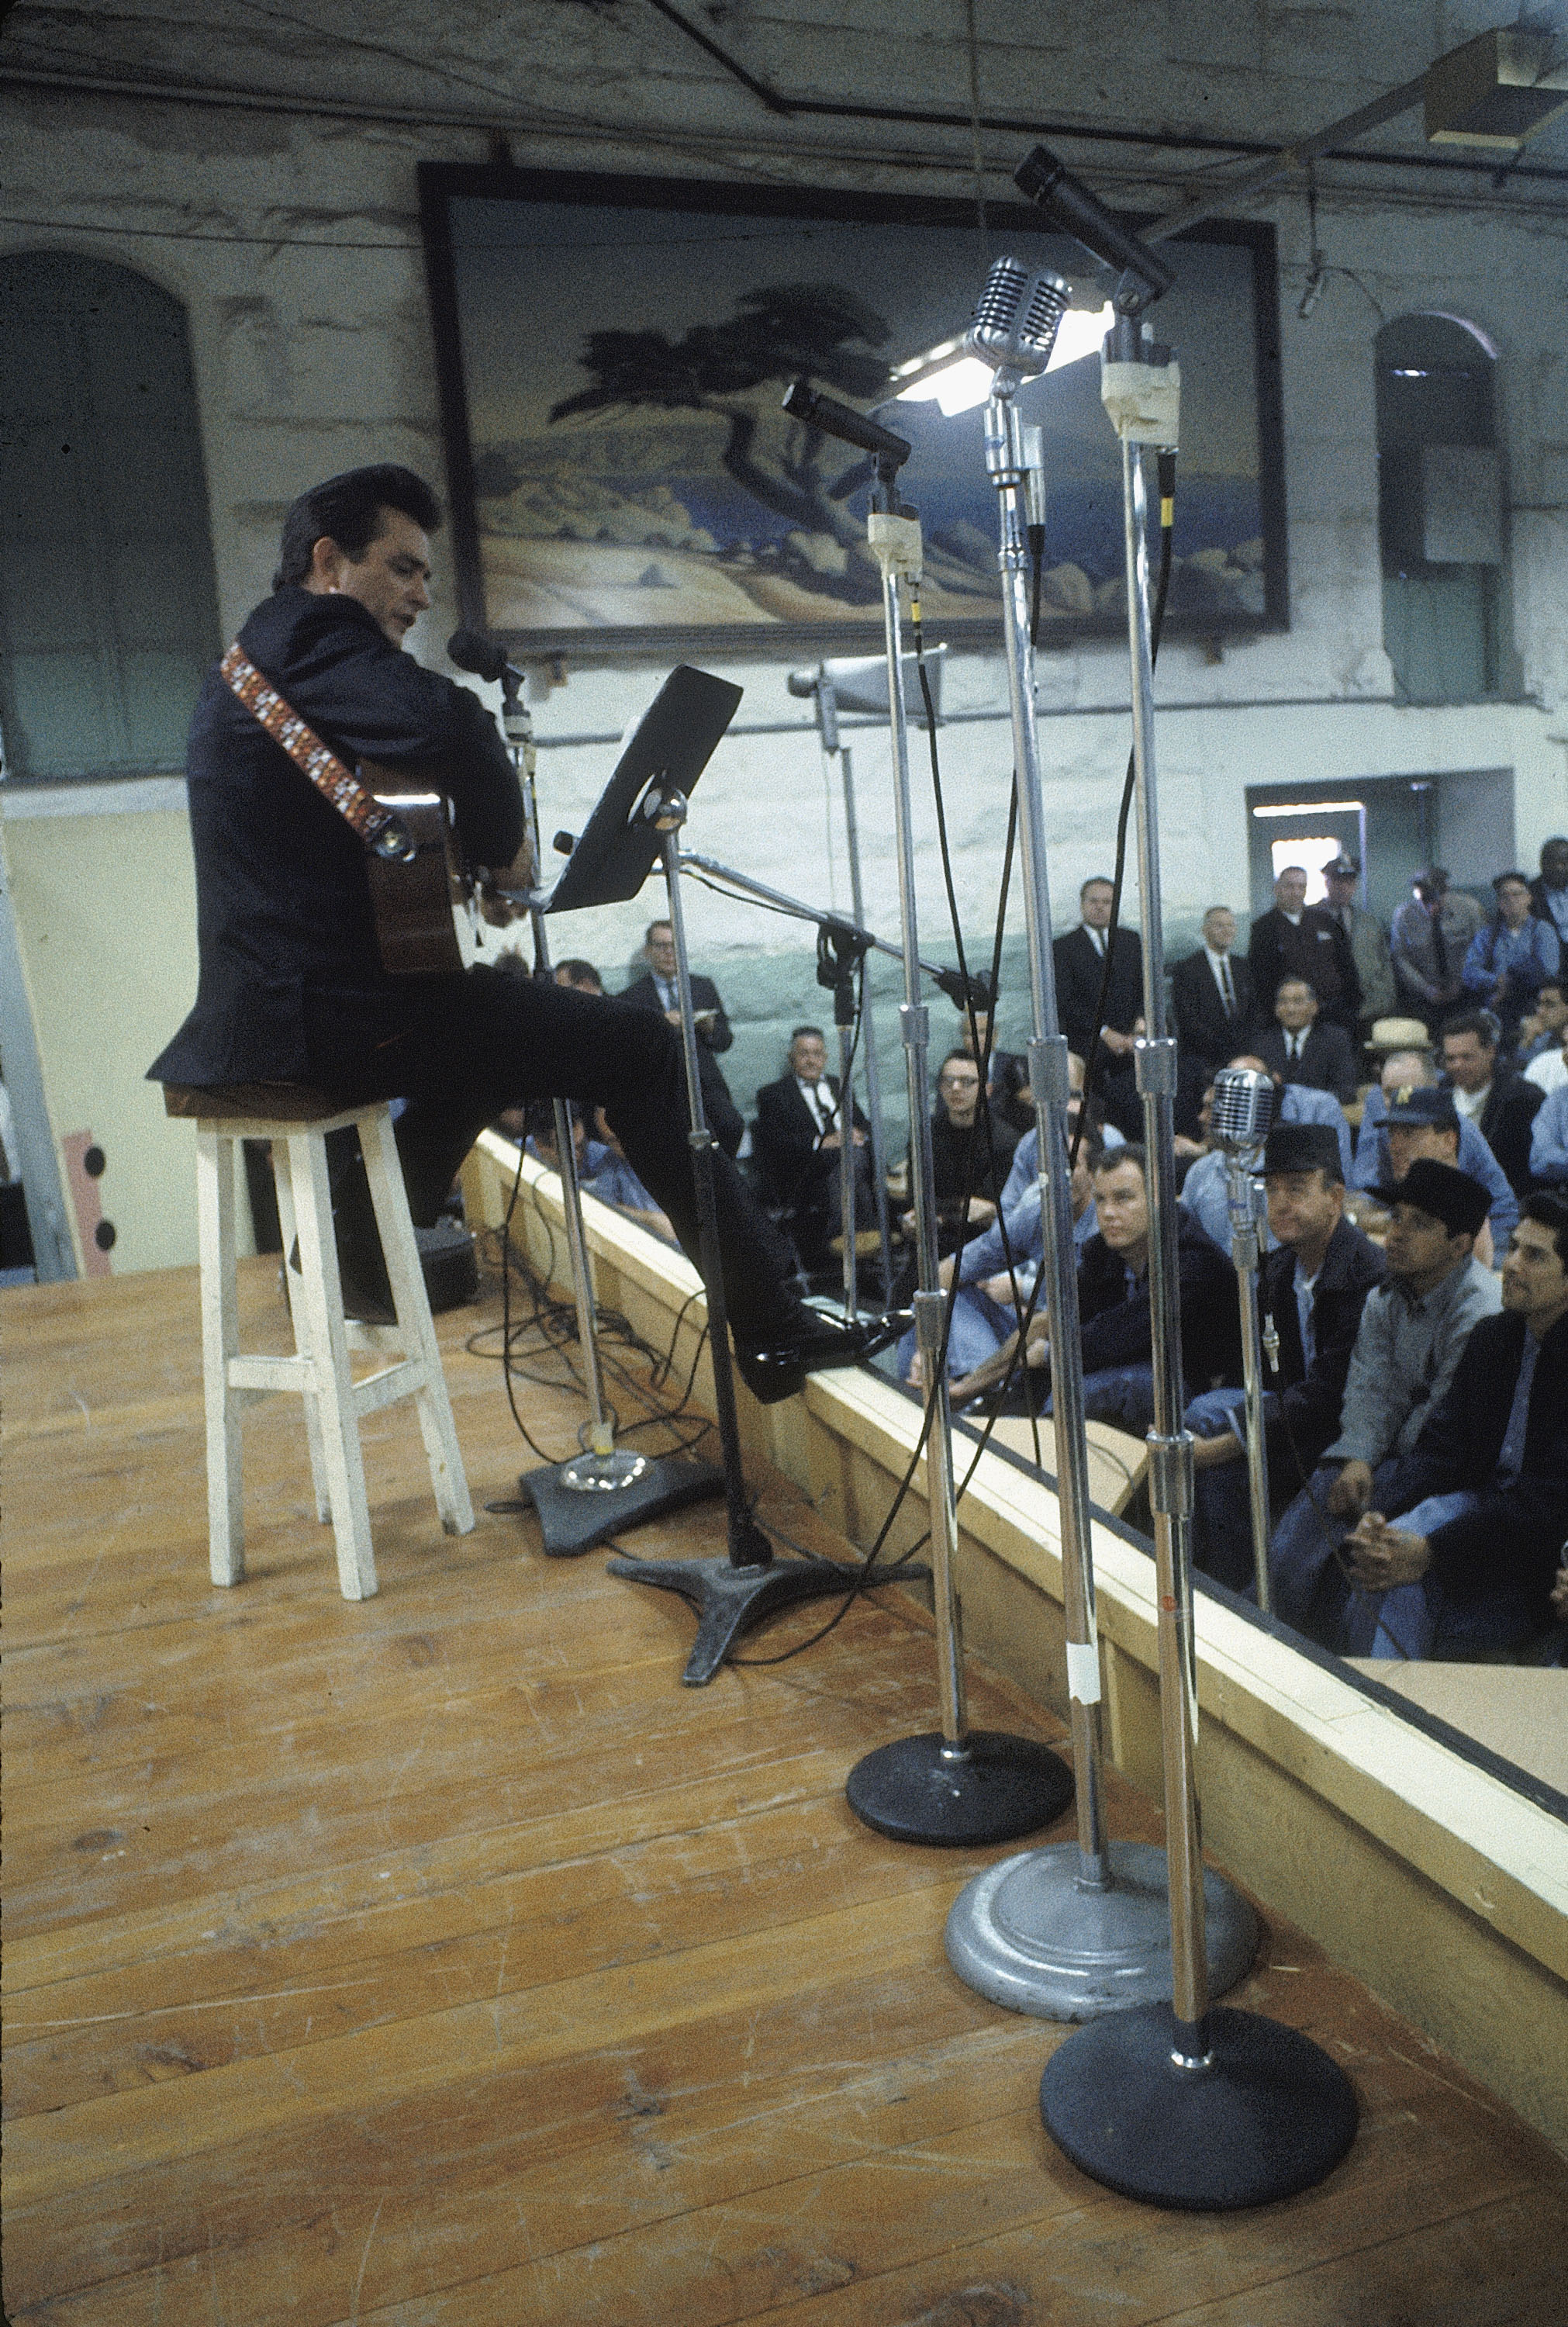 Country singer Johnny Cash performing for prisoners at the Folsom Prison in California on January 13, 1968. (Credit: Dan Poush/AP Photo)